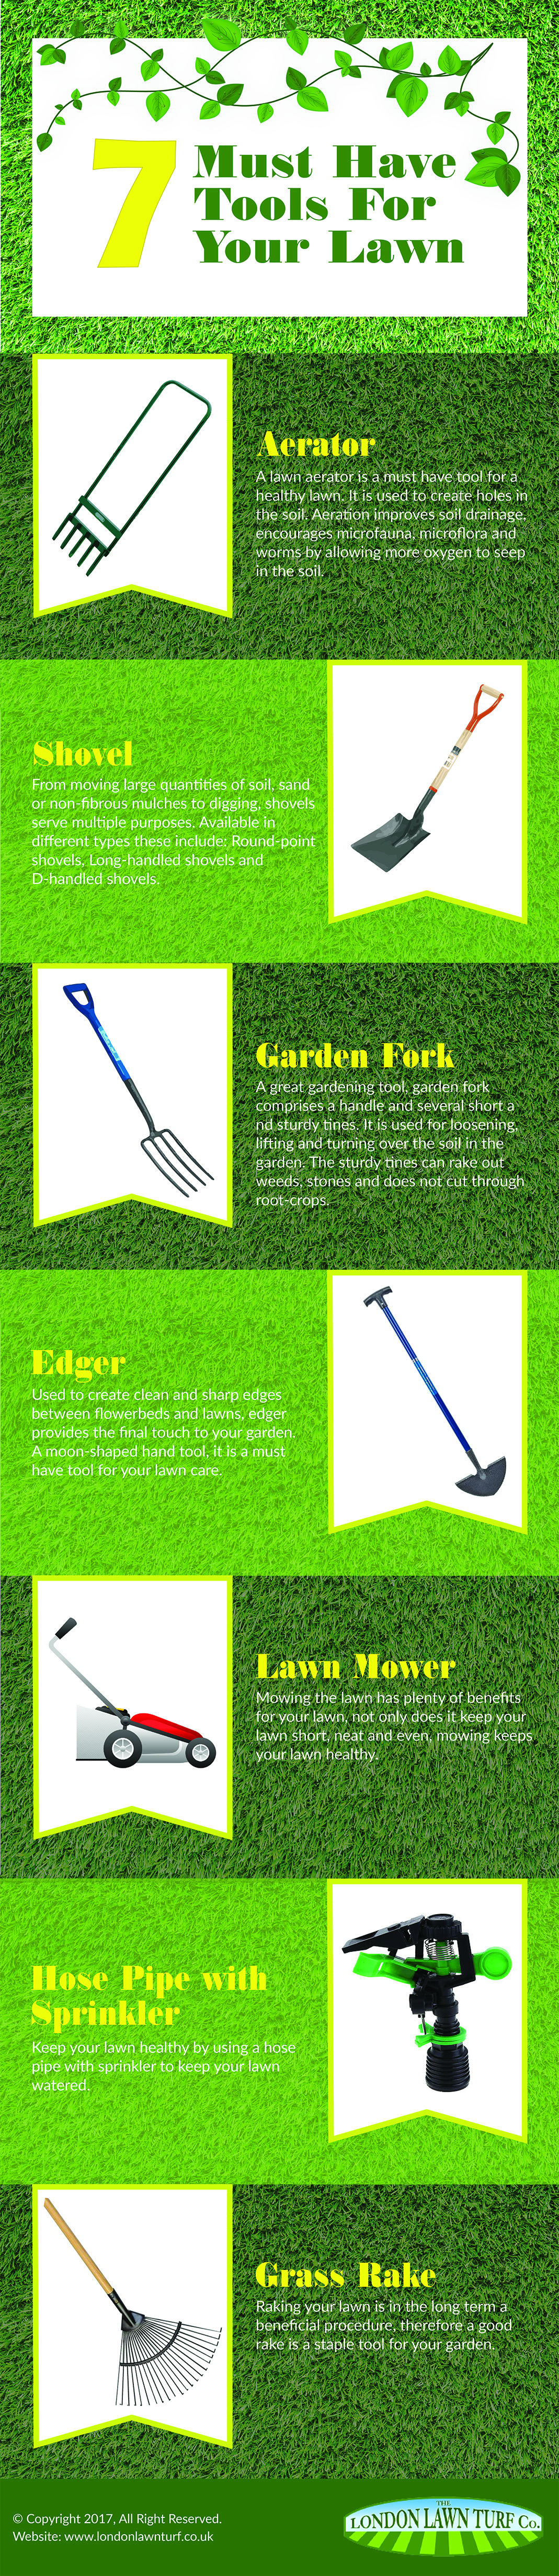 7 Must Have Tools For Your Lawn